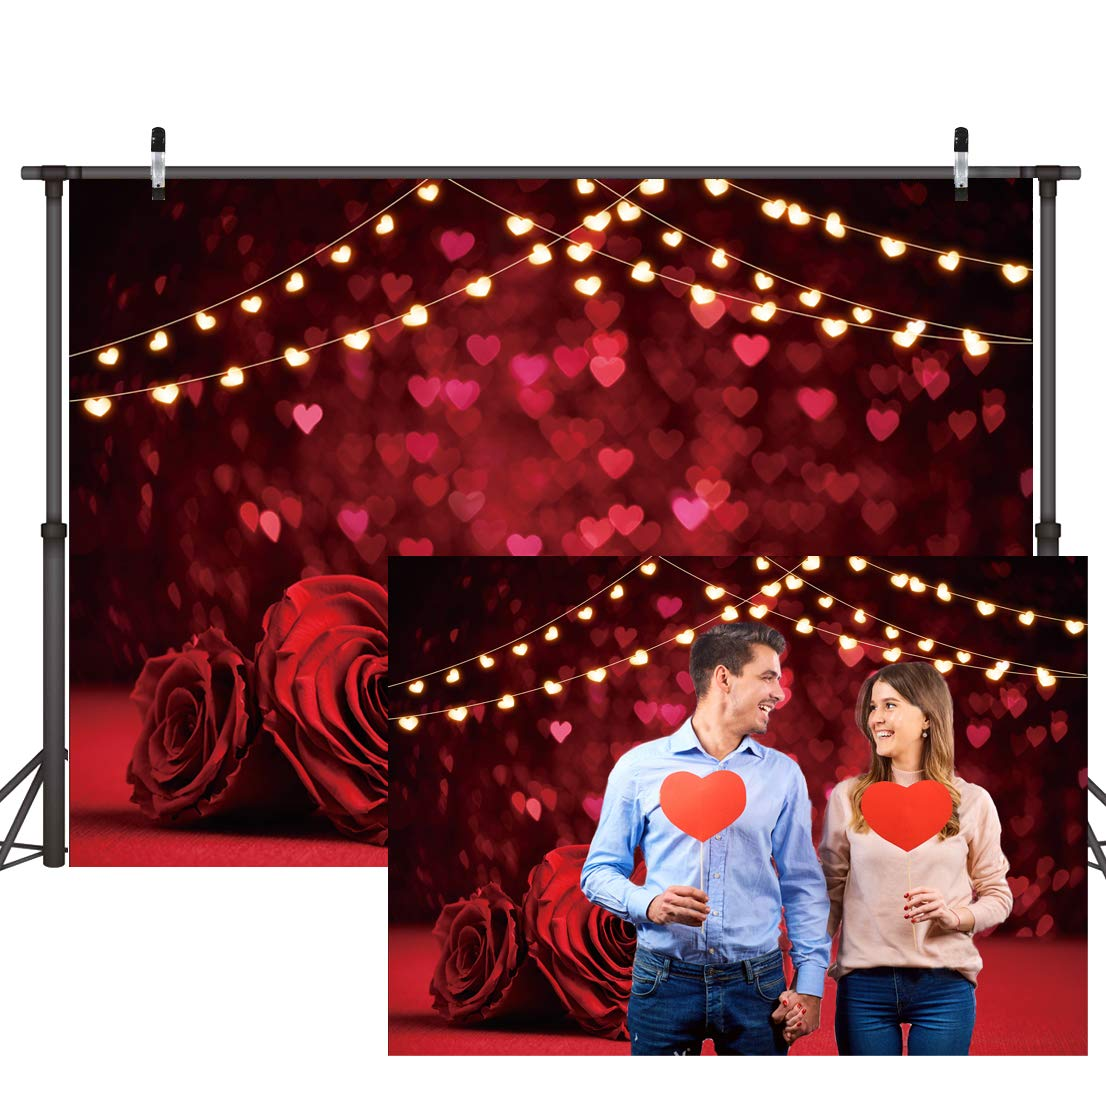 Dudaacvt 7x5ft Valentine Backdrop Red Rose Flower Love Hearts Photo Background Glitter Hearts Backdrops Rose Romantic Love Theme Photo Booth Backdrop D415